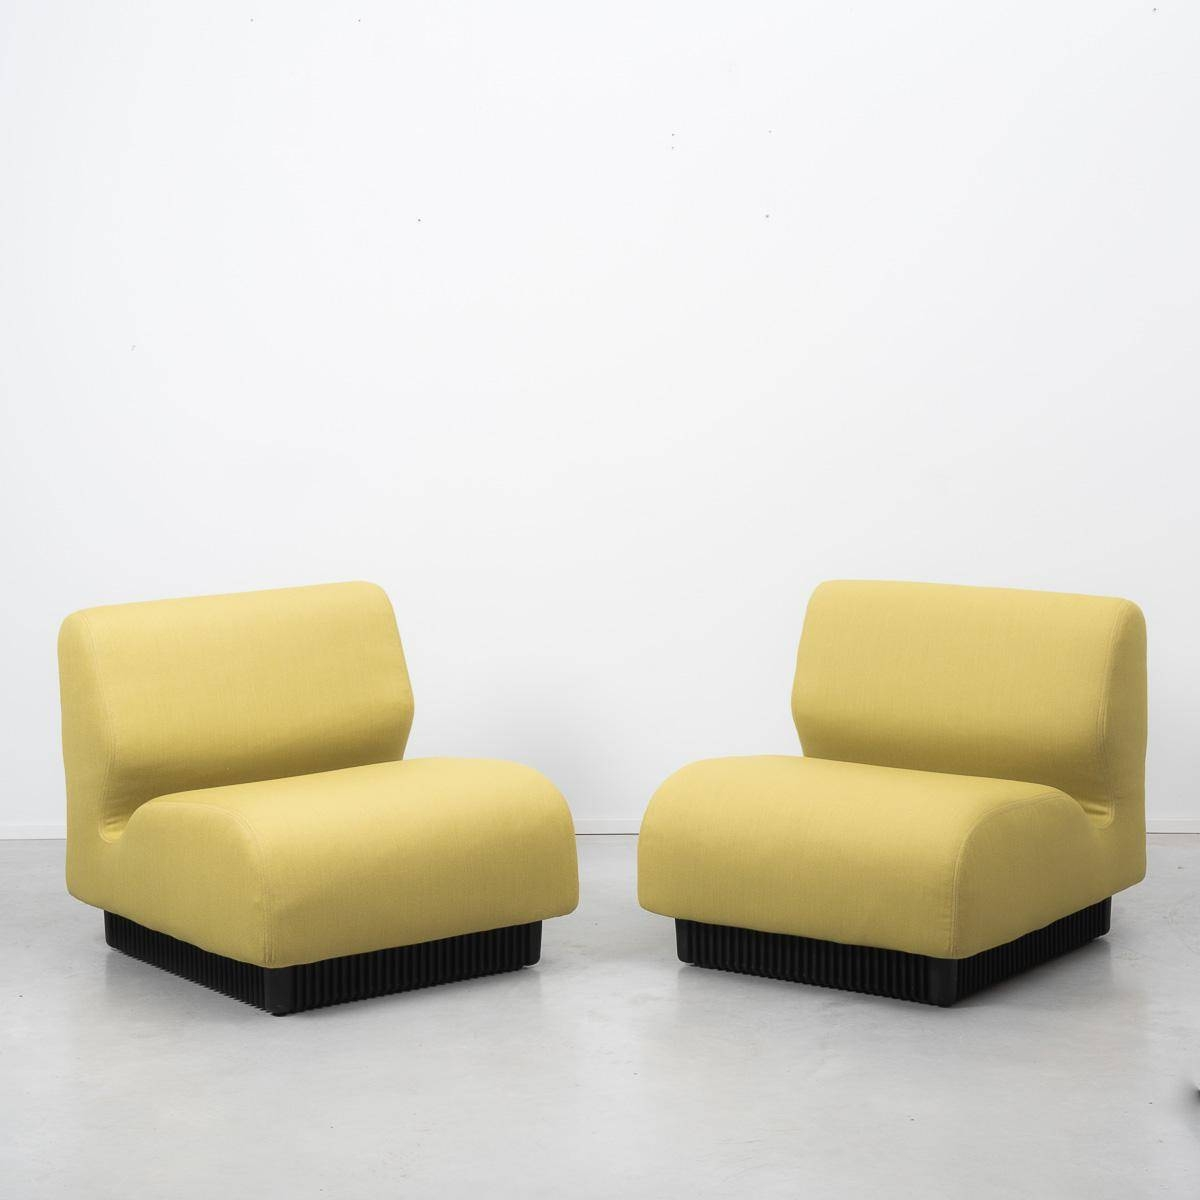 Yellow British Modular Sofadon Chadwick For Herman Miller with regard to Chadwick Sofas (Image 15 of 15)